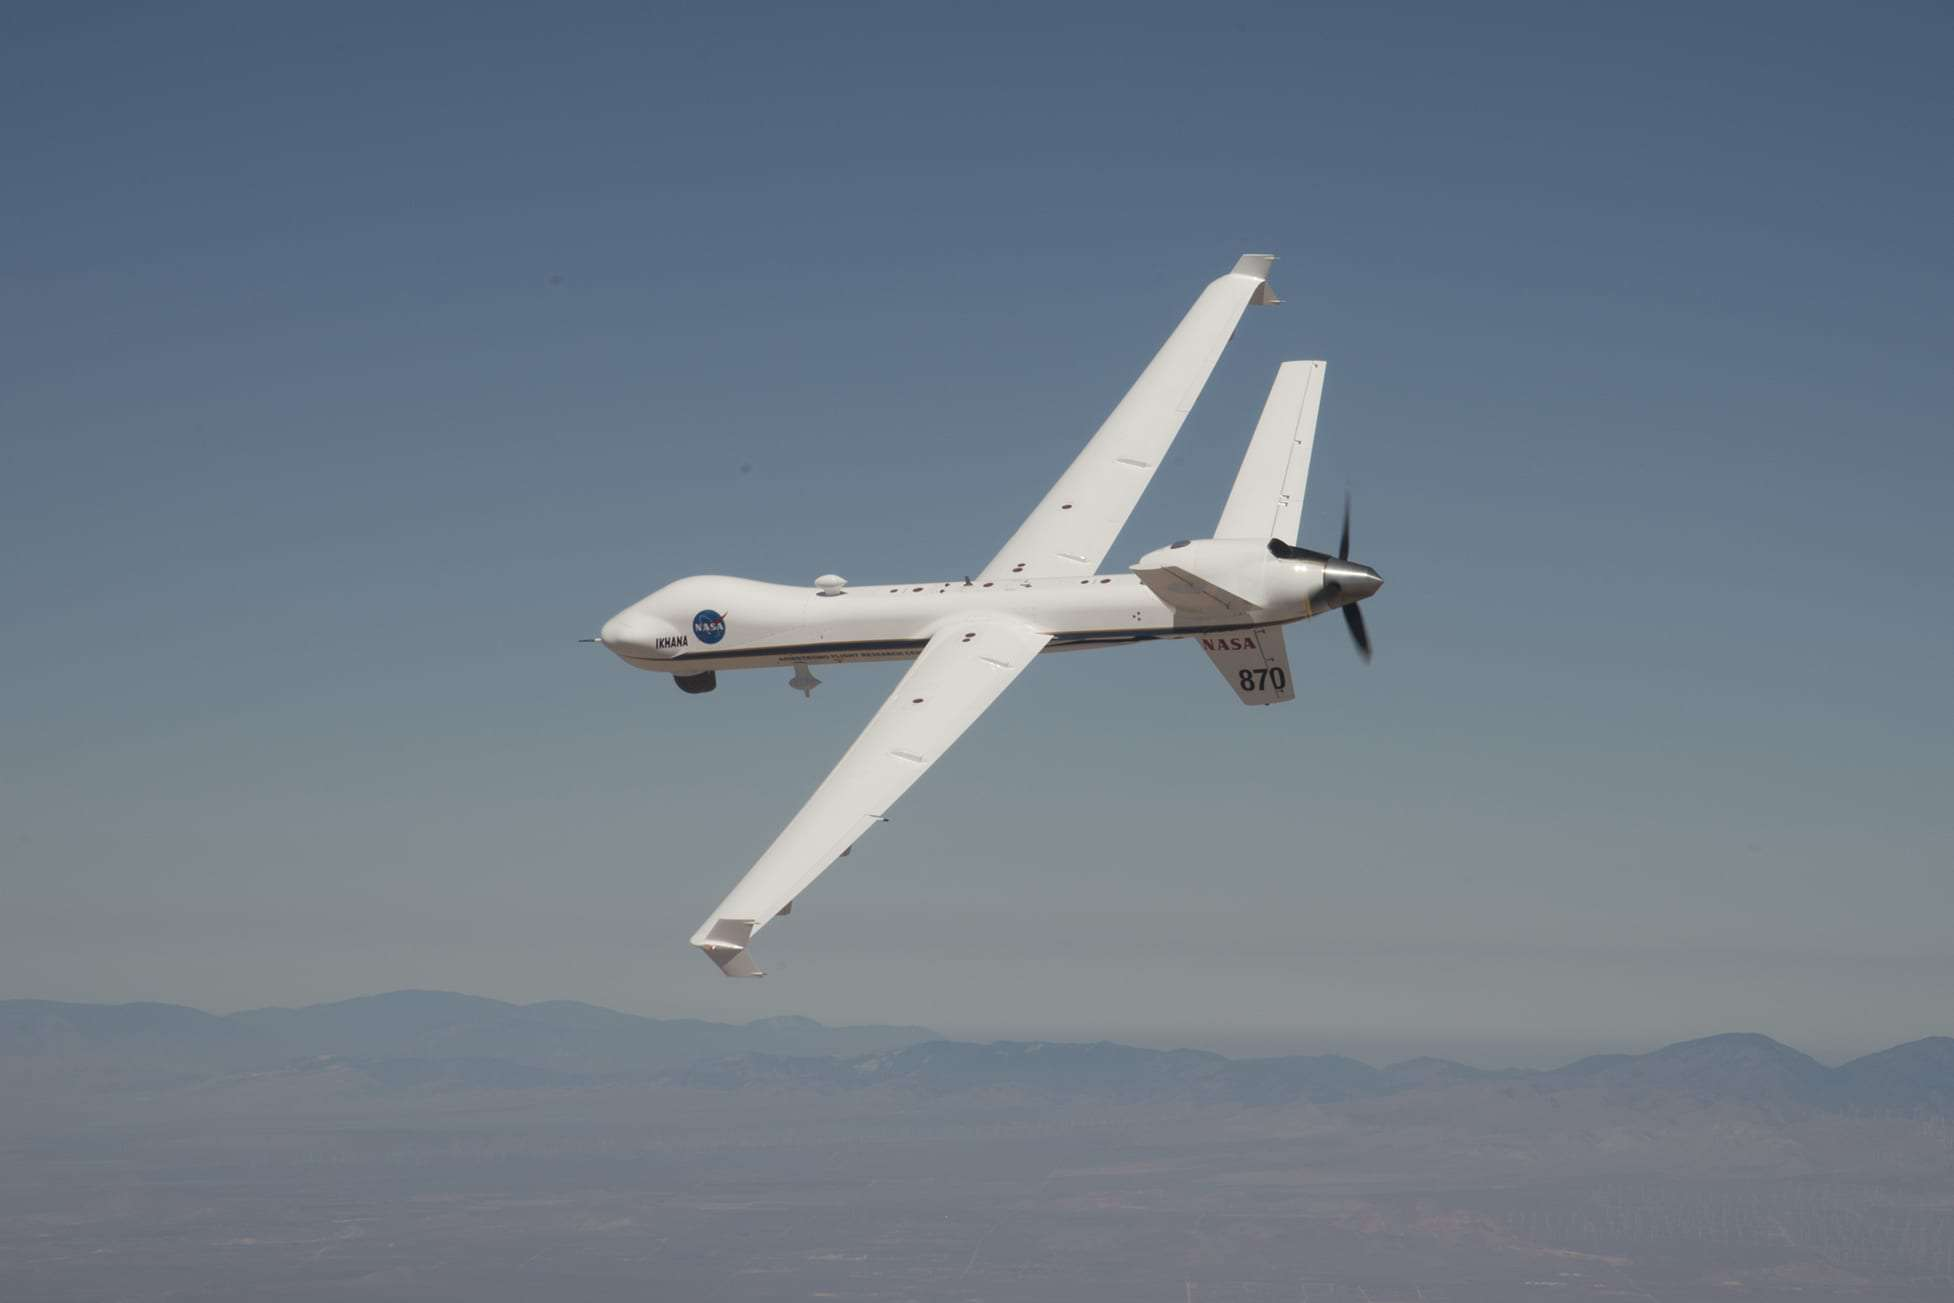 Is using Unmanned Aerial Systems Ethical? Essay Sample